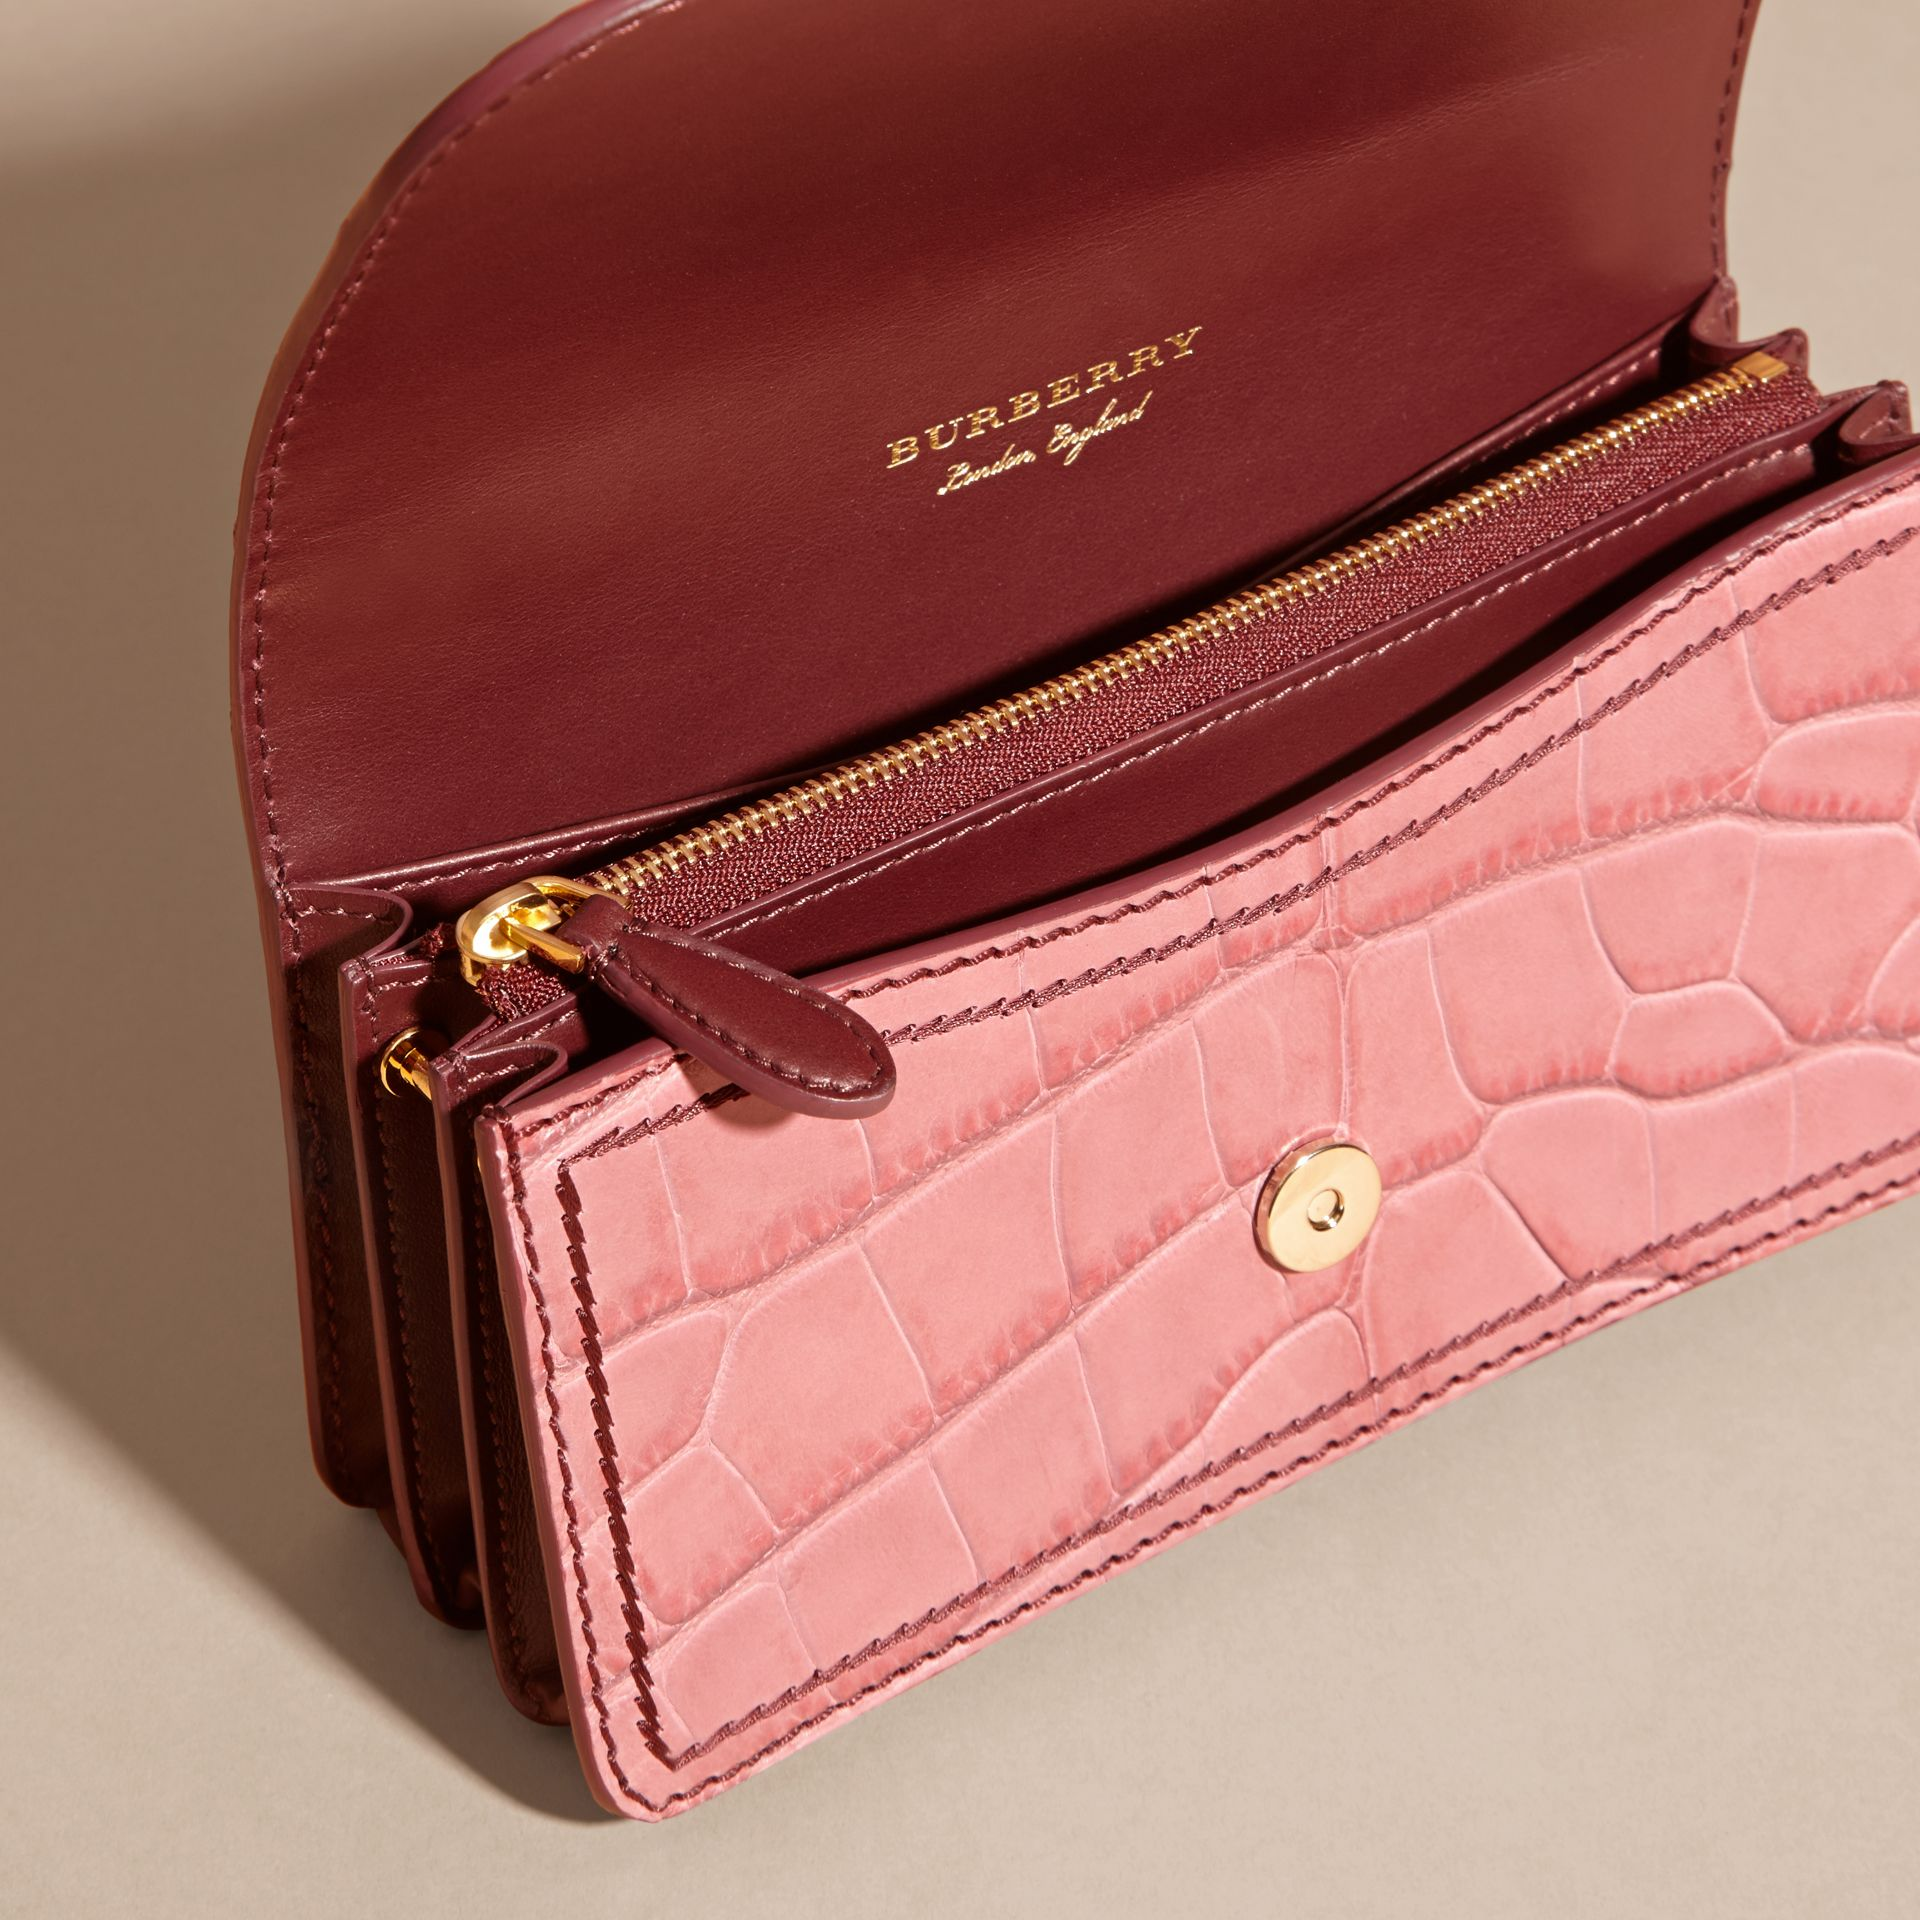 The Small Buckle Bag in Alligator and Leather in Dusky Pink/ Burgundy - Women | Burberry United Kingdom - gallery image 6